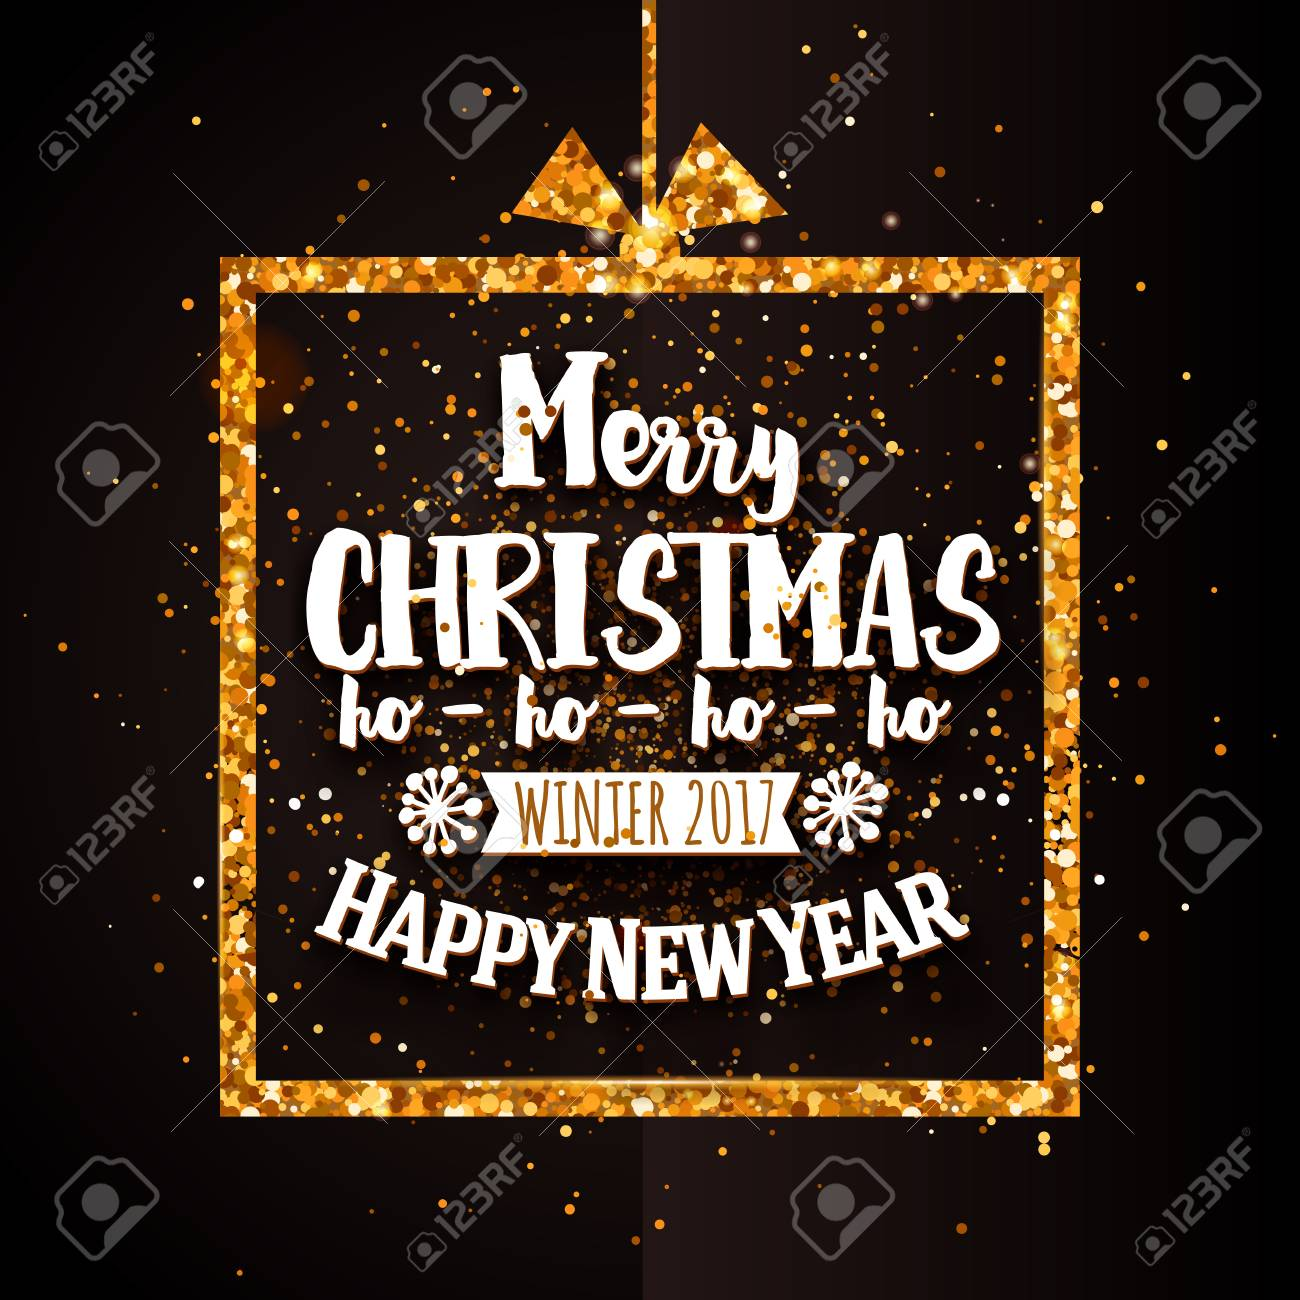 merry christmas and happy new year typography with gold glitter border holidays background with golden